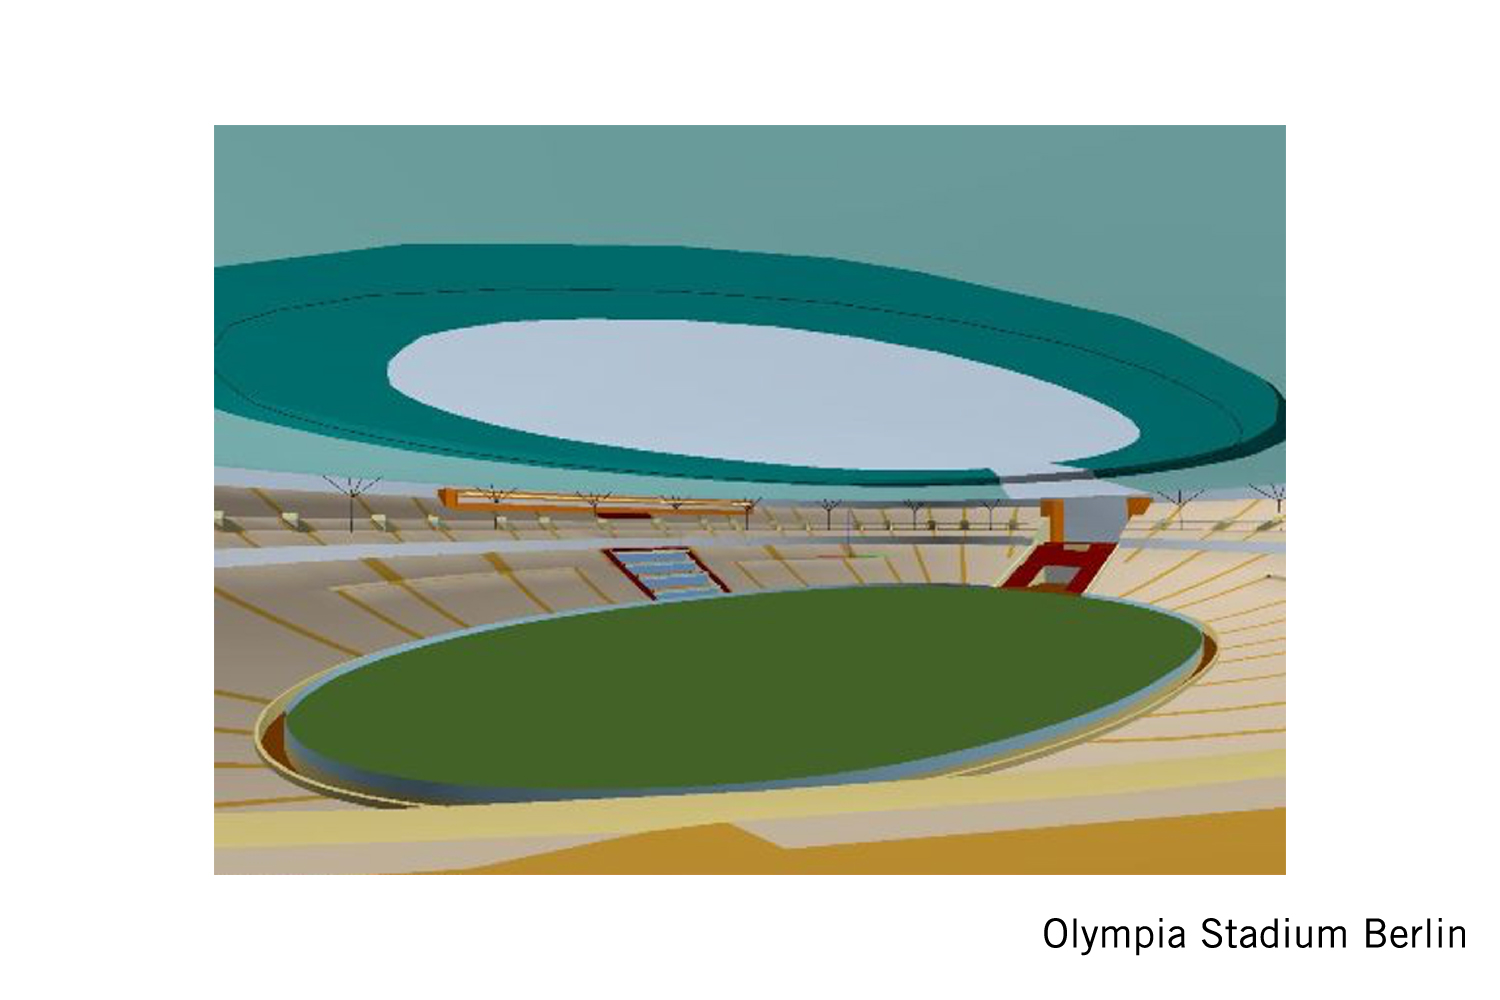 The Olympia Stadium Berlin is a Olympic and FIFA Germany 2006 World Cup Stadium, with a capacity of more than 70000 people. Extensive simulation calculations using the computer model were the core of work of ADA-AMC - WSDG. 3D model.